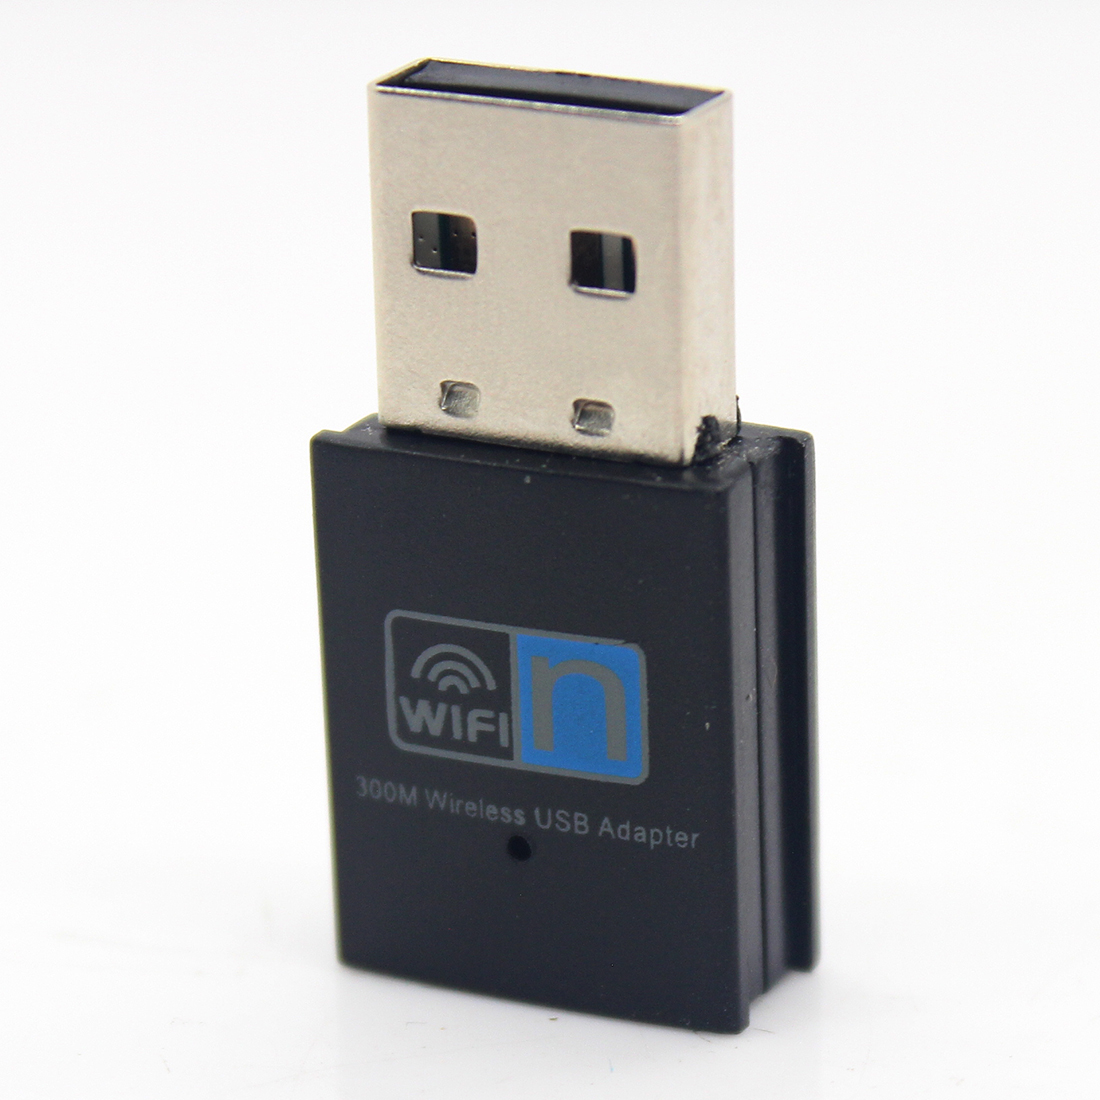 NOYOKERE Mini 300M USB2.0 RTL8192 Wifi Dongle WiFi Adapter Wireless Wifi Dongle Network Card 802.11 N/g/b Wi Fi LAN Adapter